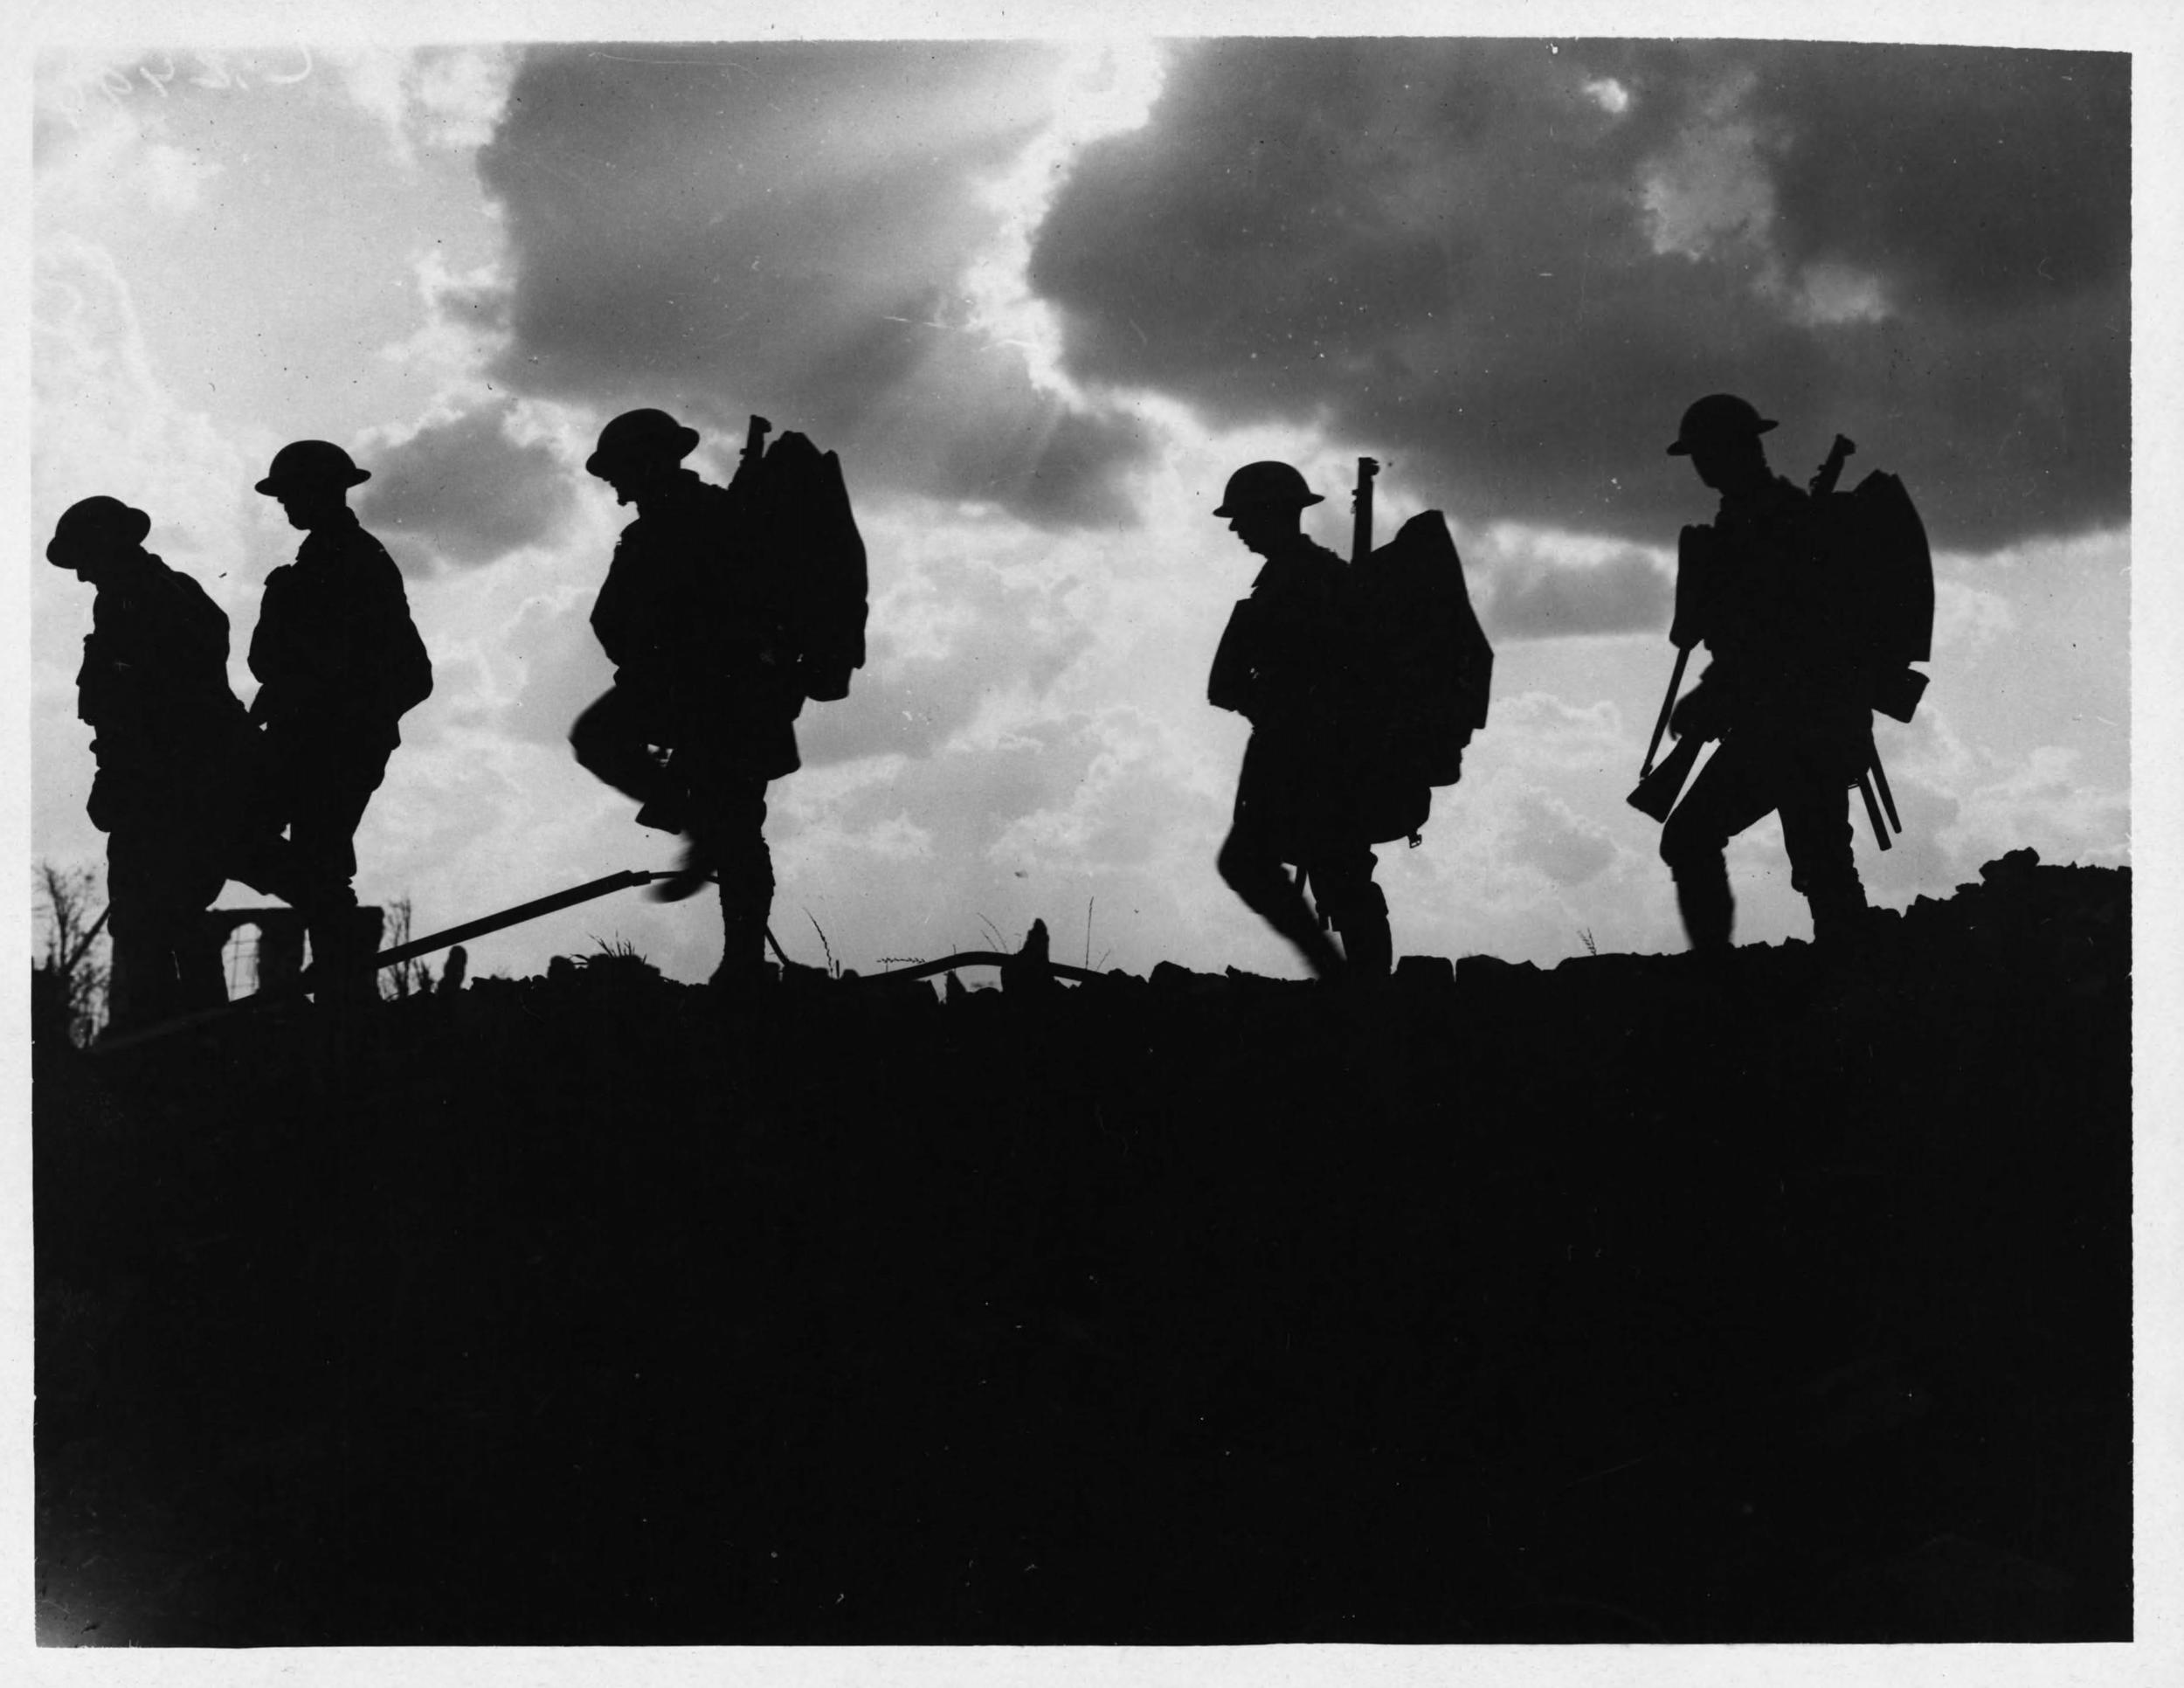 NLS_Haig_-_Troops_moving_up_at_eventide_-_men_of_a_Yorkshire_regiment_on_the_march.jpg